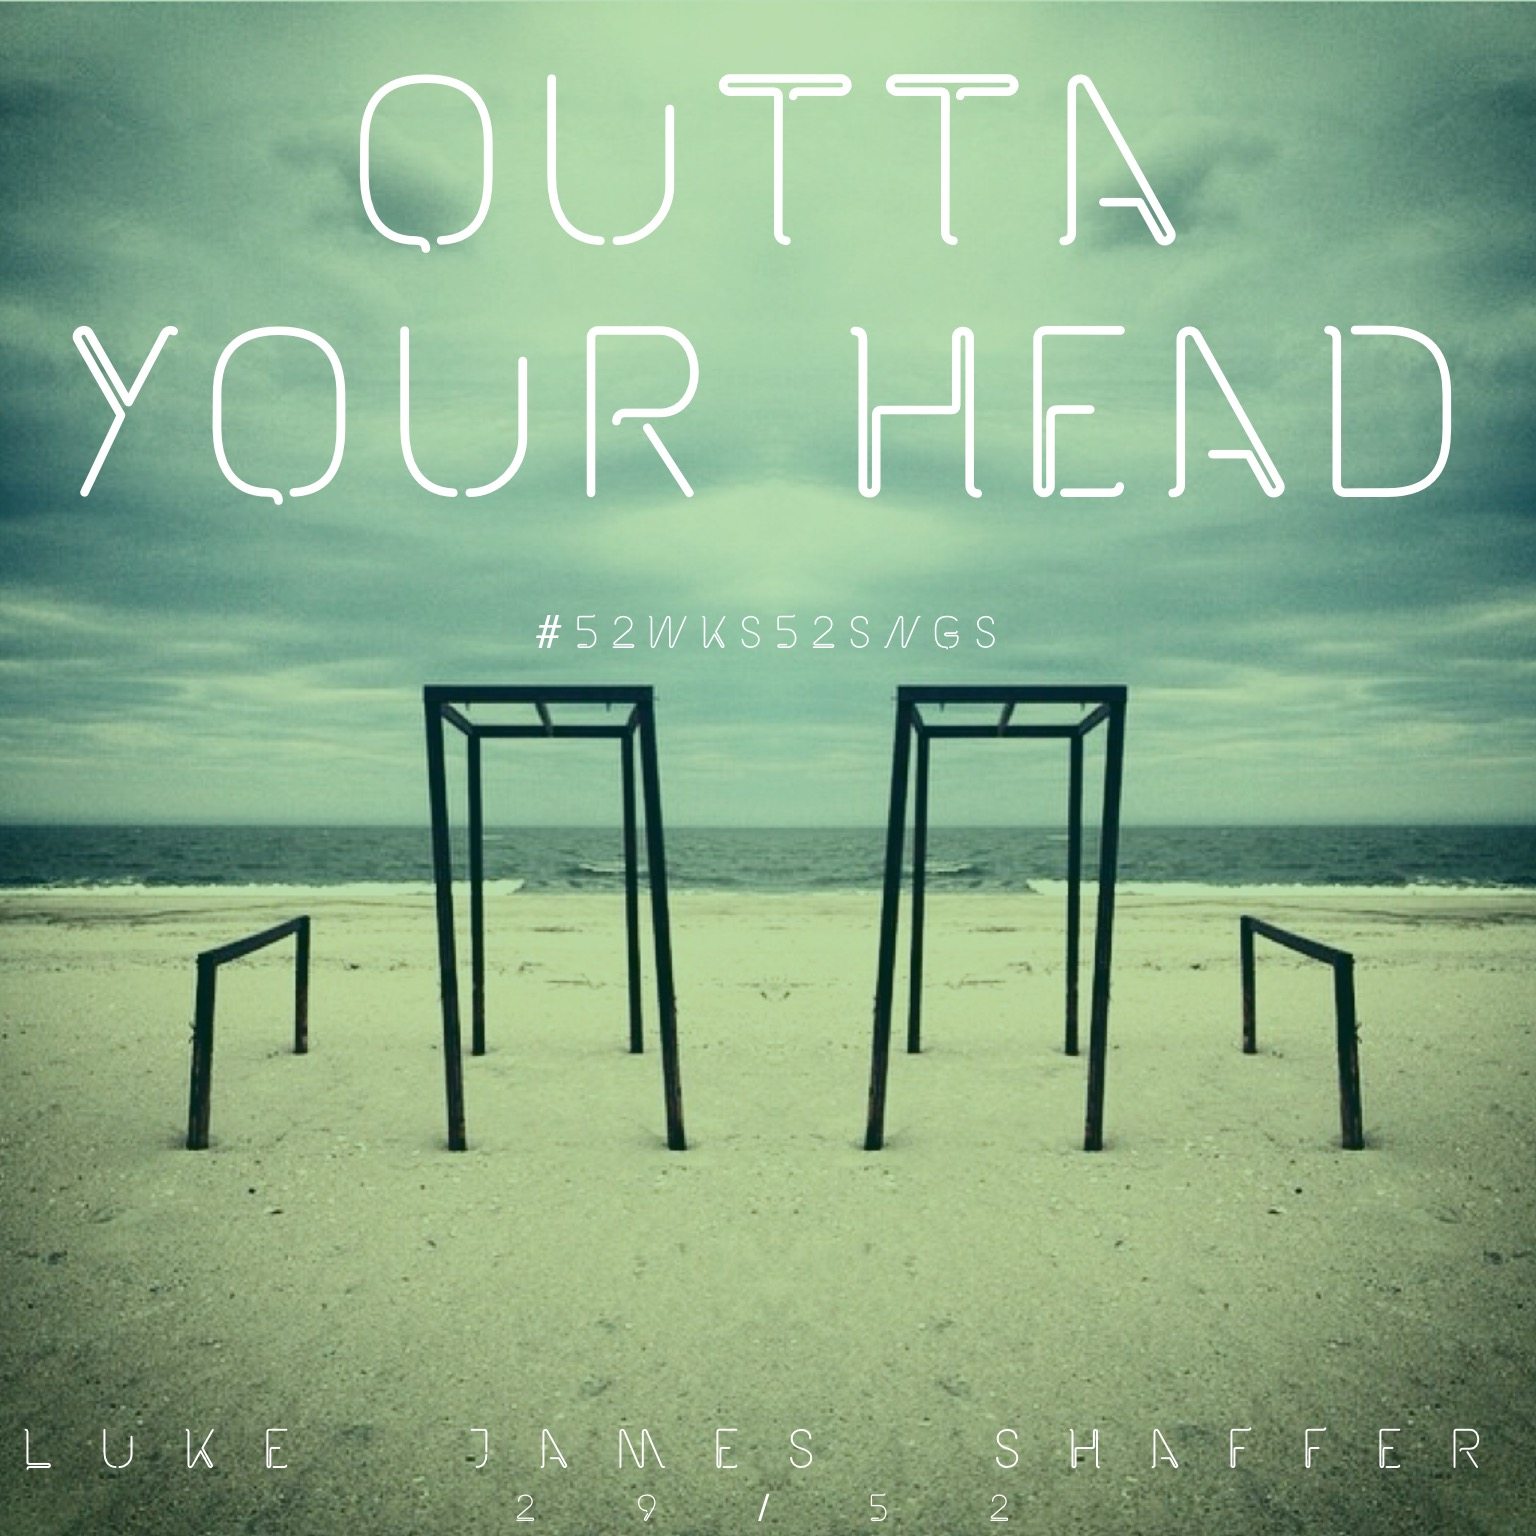 Outta Your Head